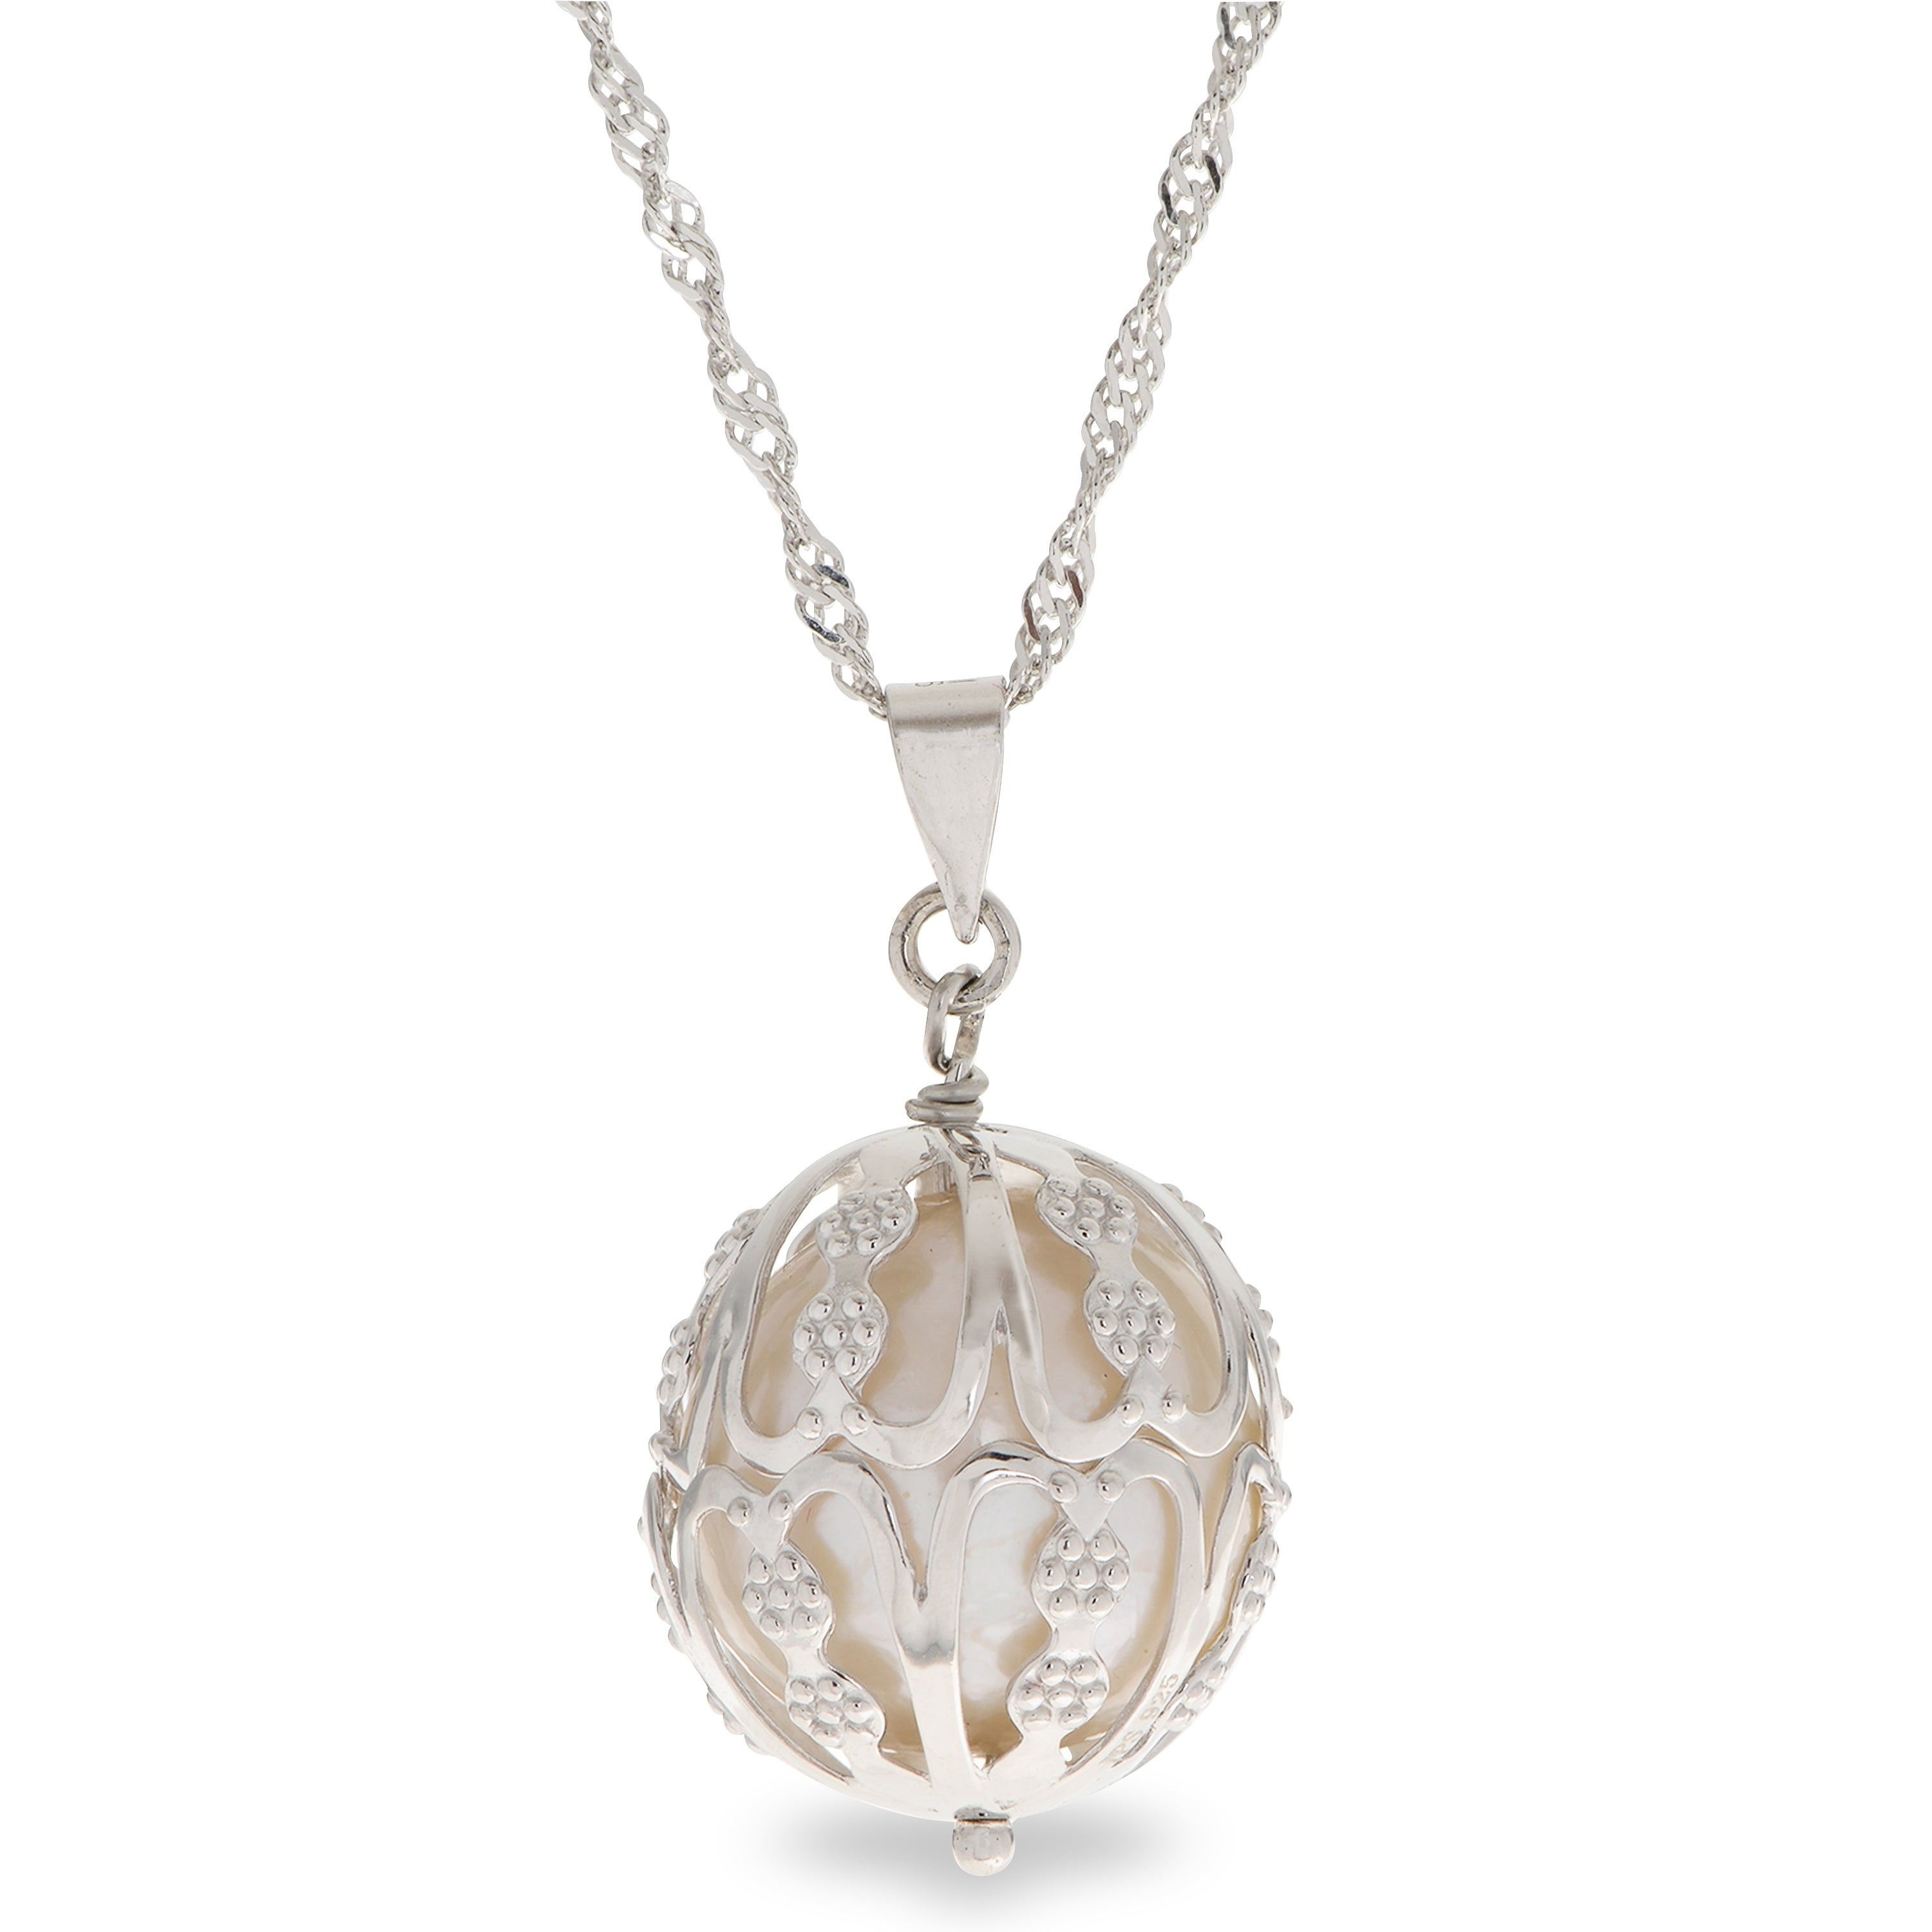 Cheryl M Sterling Silver /& Gold Plated 8mm X /& O CZ Pendant Necklace 18